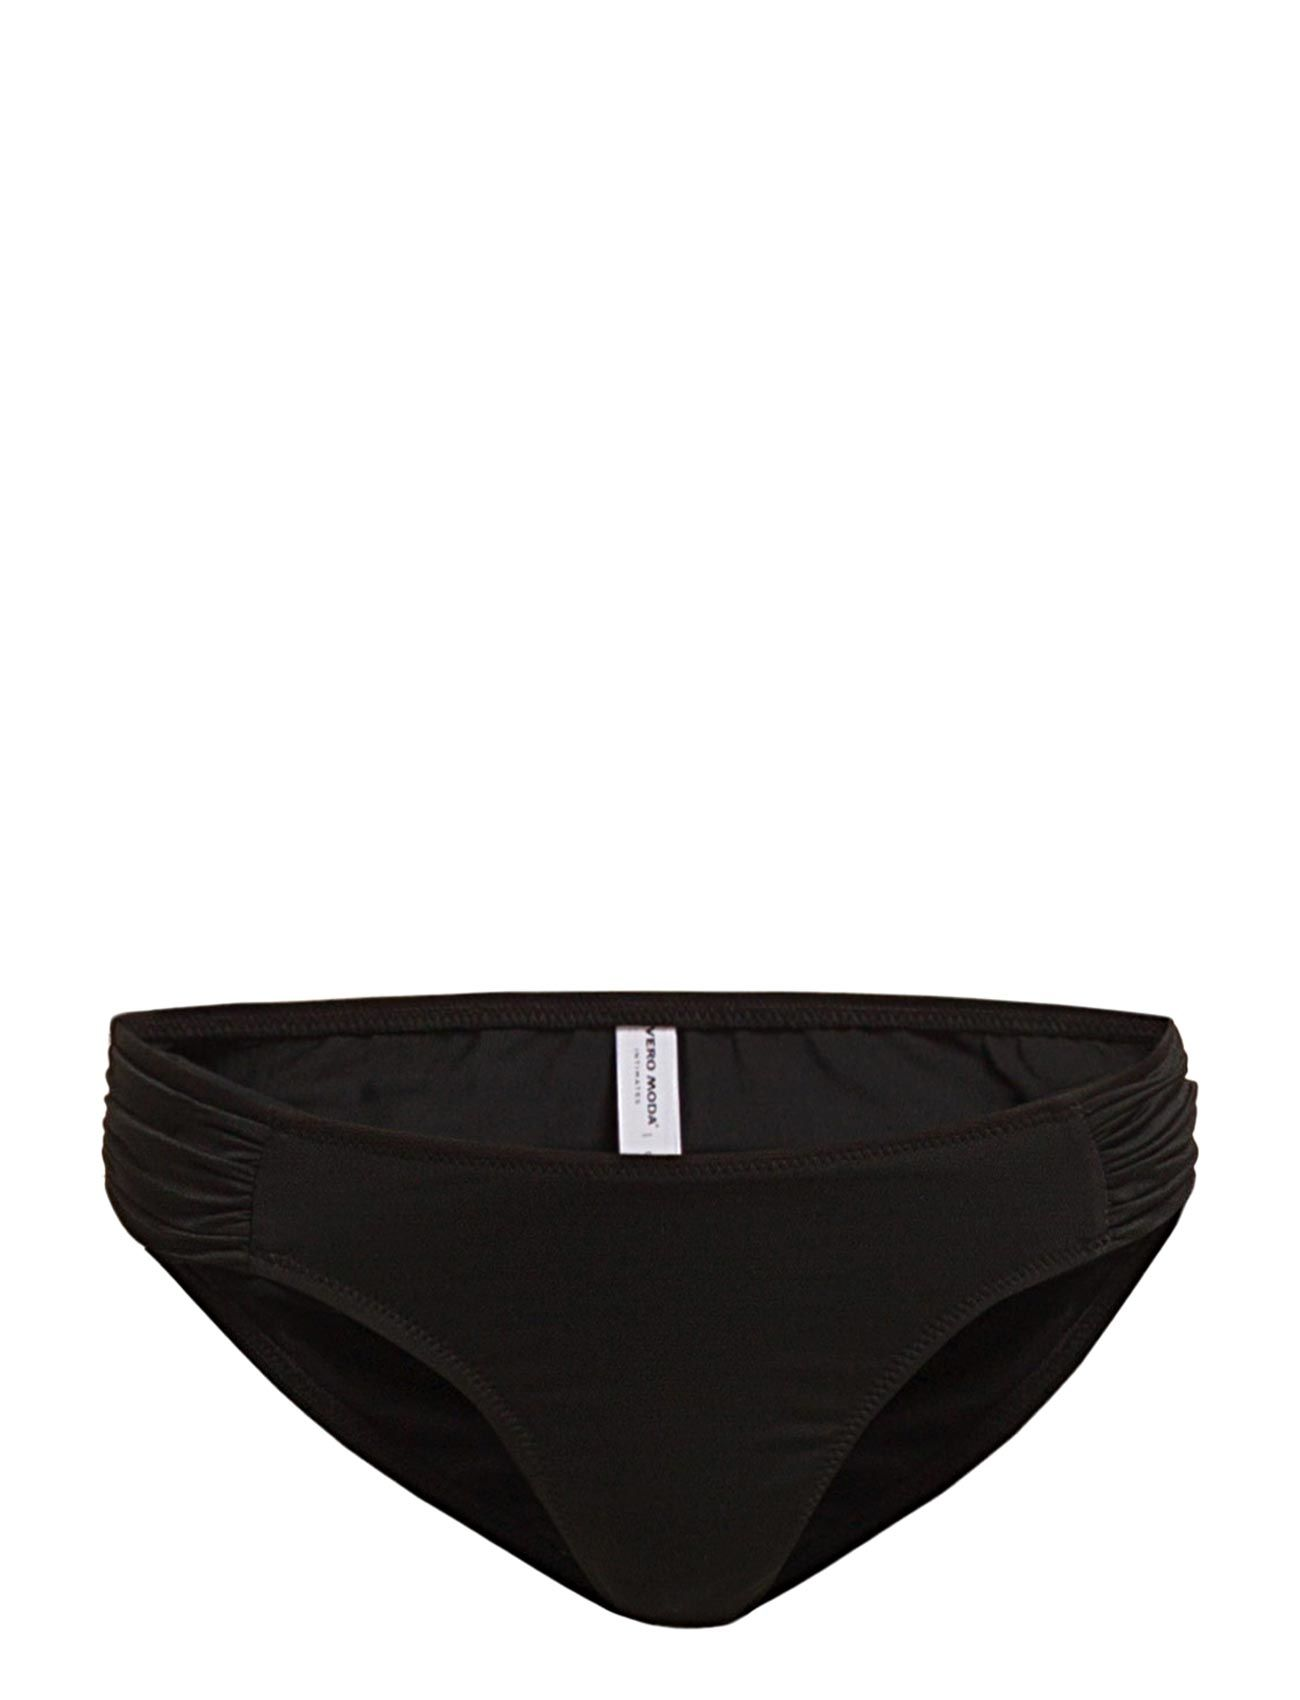 New Madagascar Tanga Black